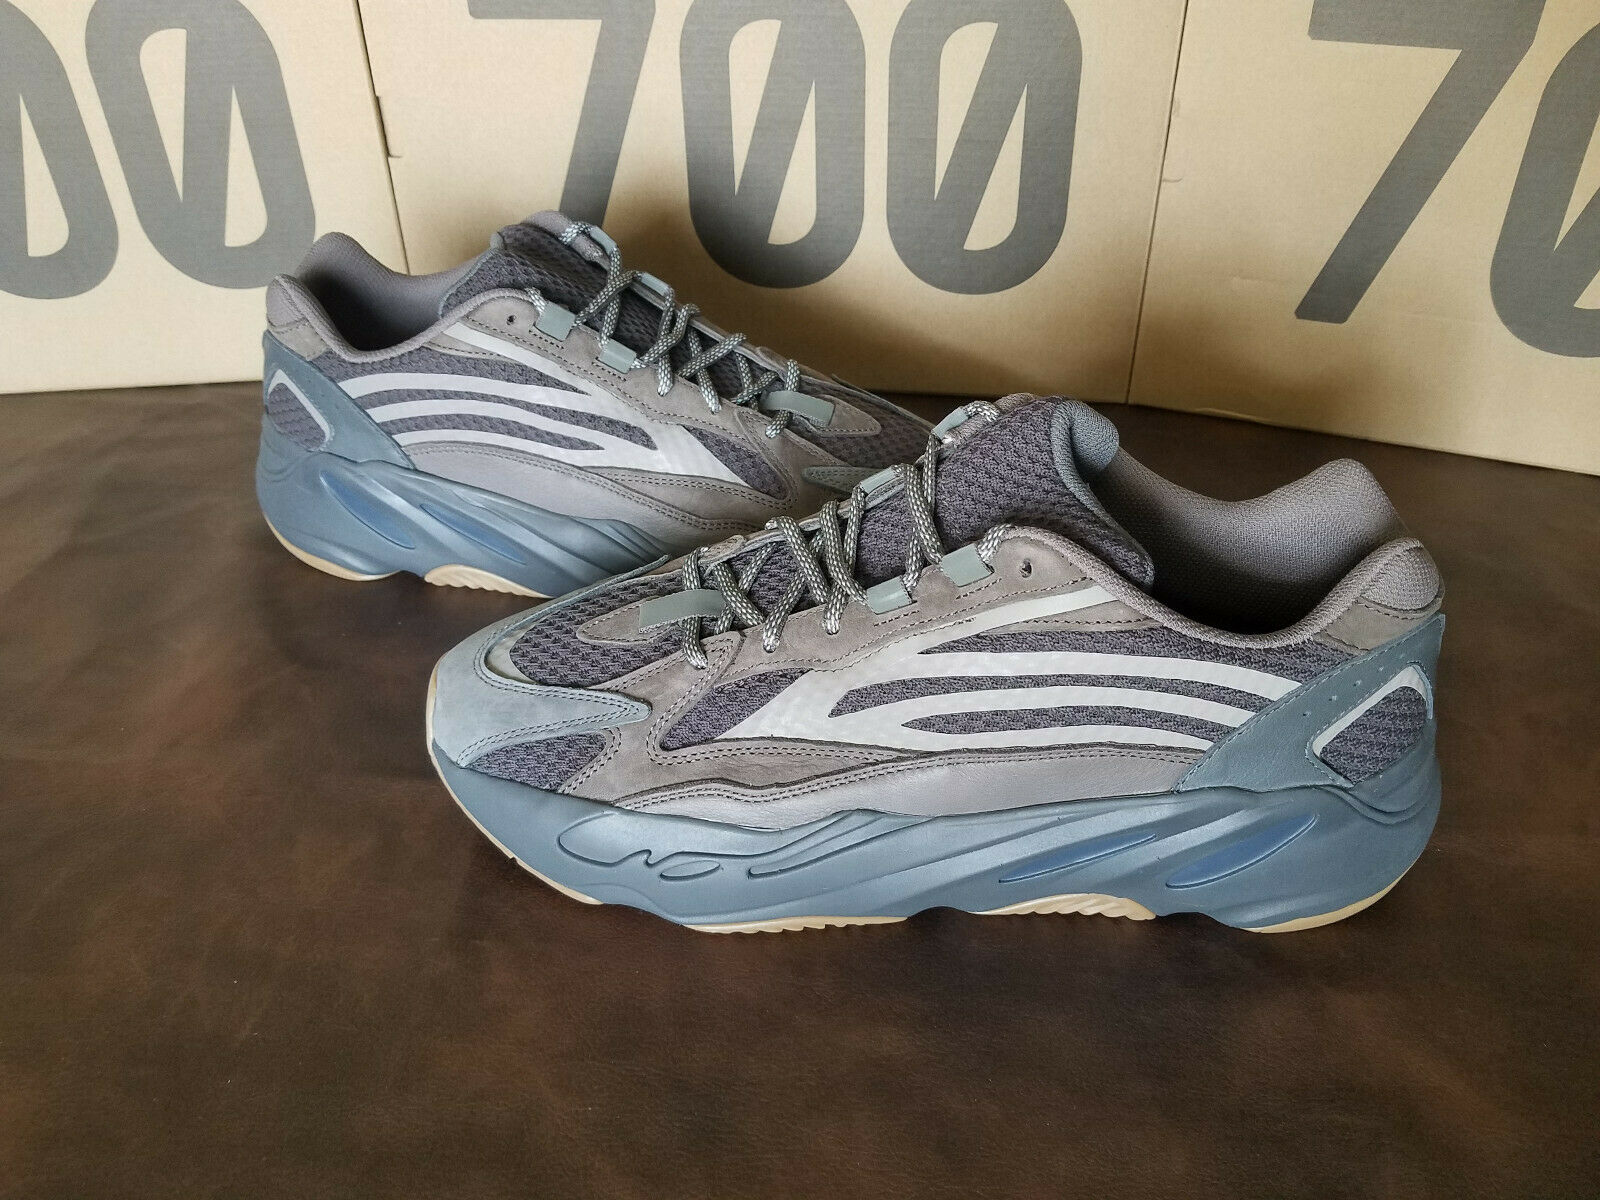 DS adidas Yeezy Boost 700 V2 Geode - EG6860 - Size 13